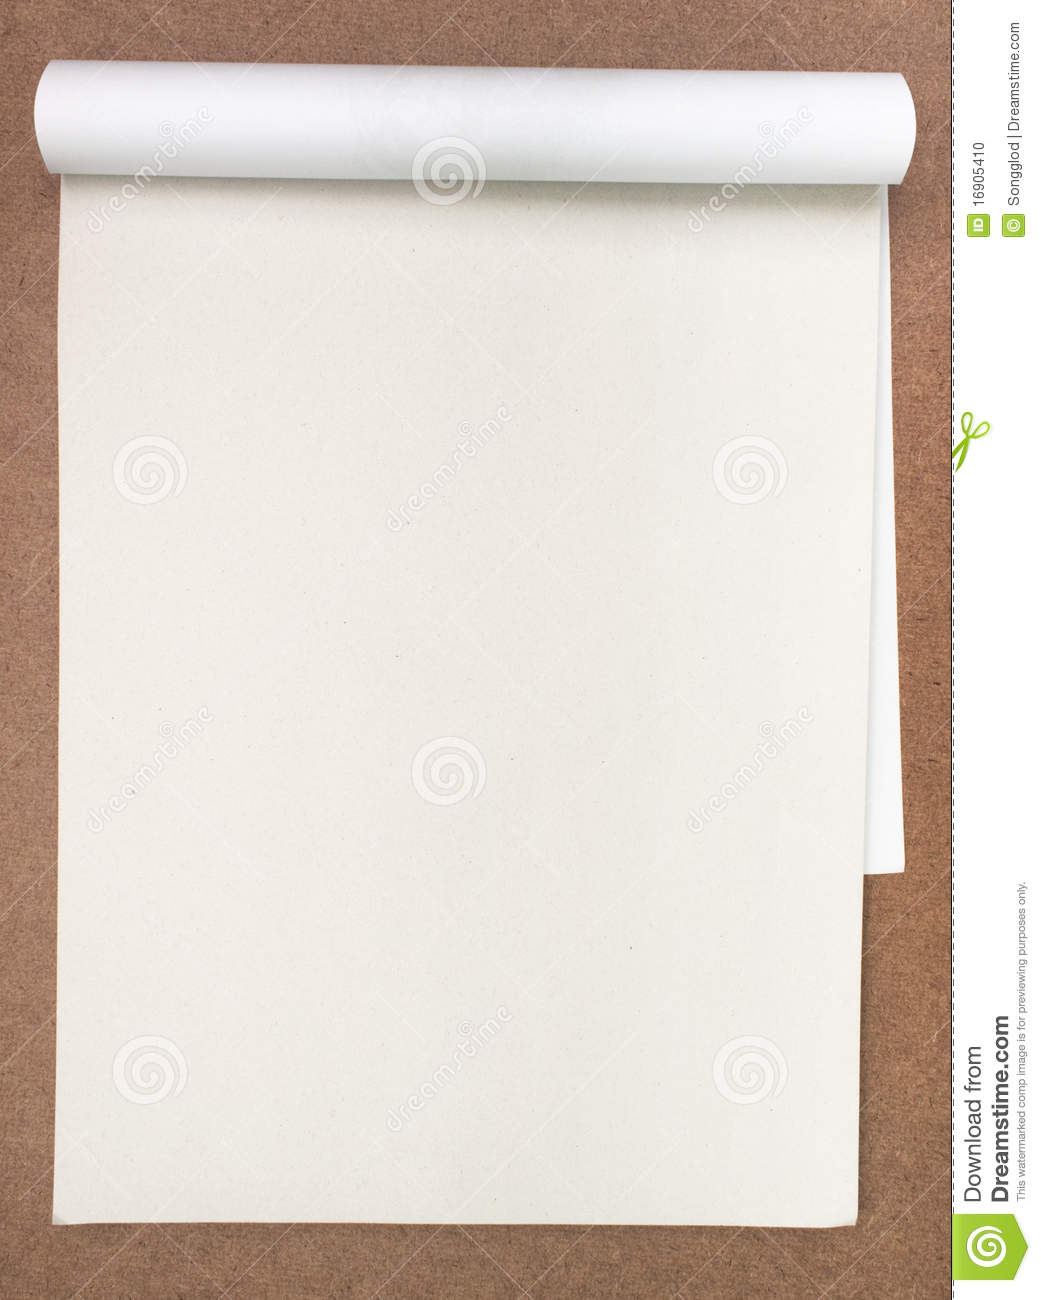 Drawing book stock photo. Image of background, blank - 16905410